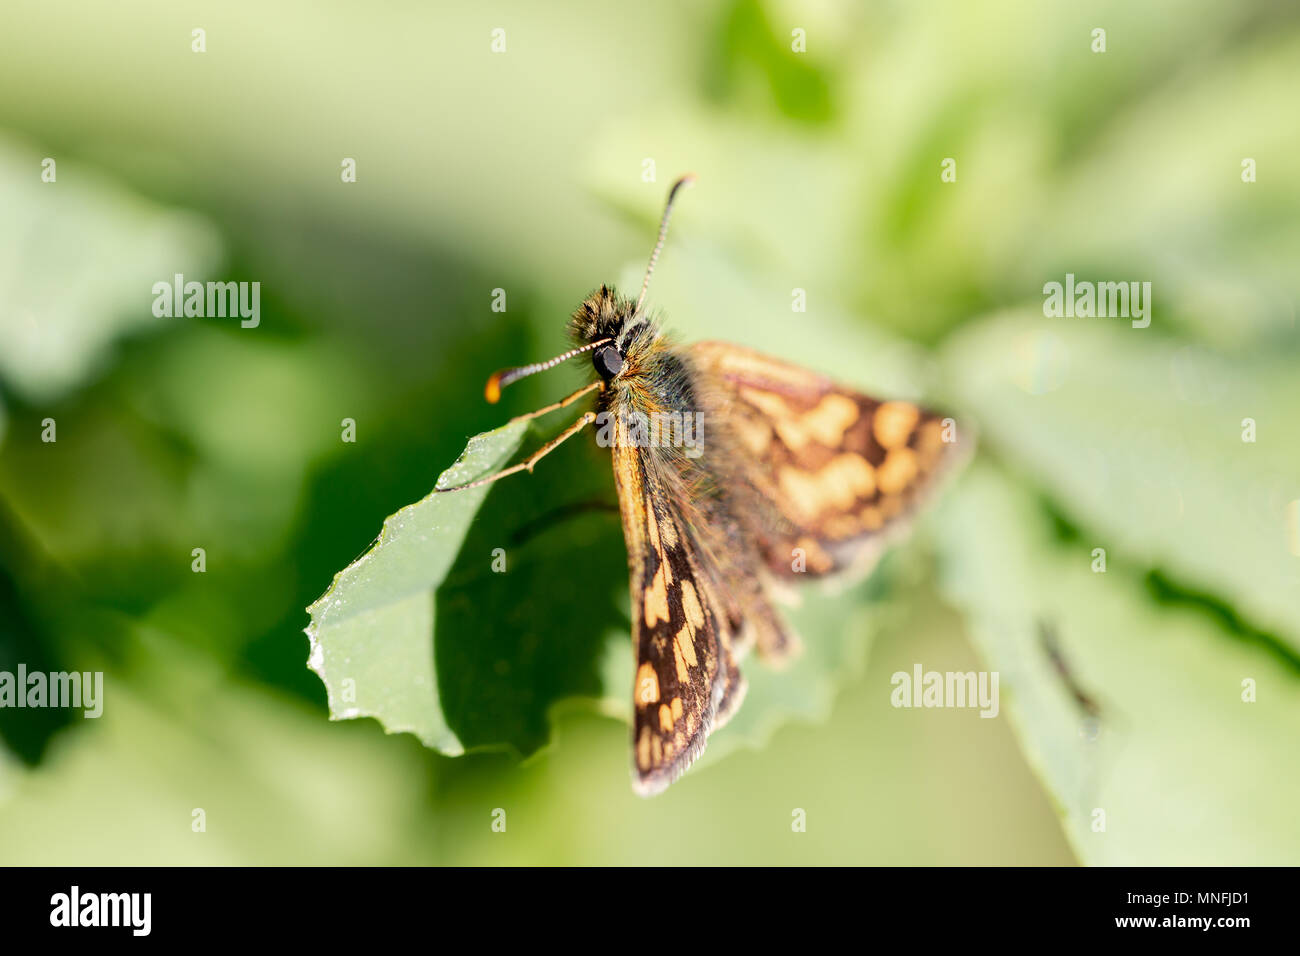 Skipper diurnal butterfly from Hesperiidae family close up macro portrait. Horizontal shot with shallow depth of field Stock Photo